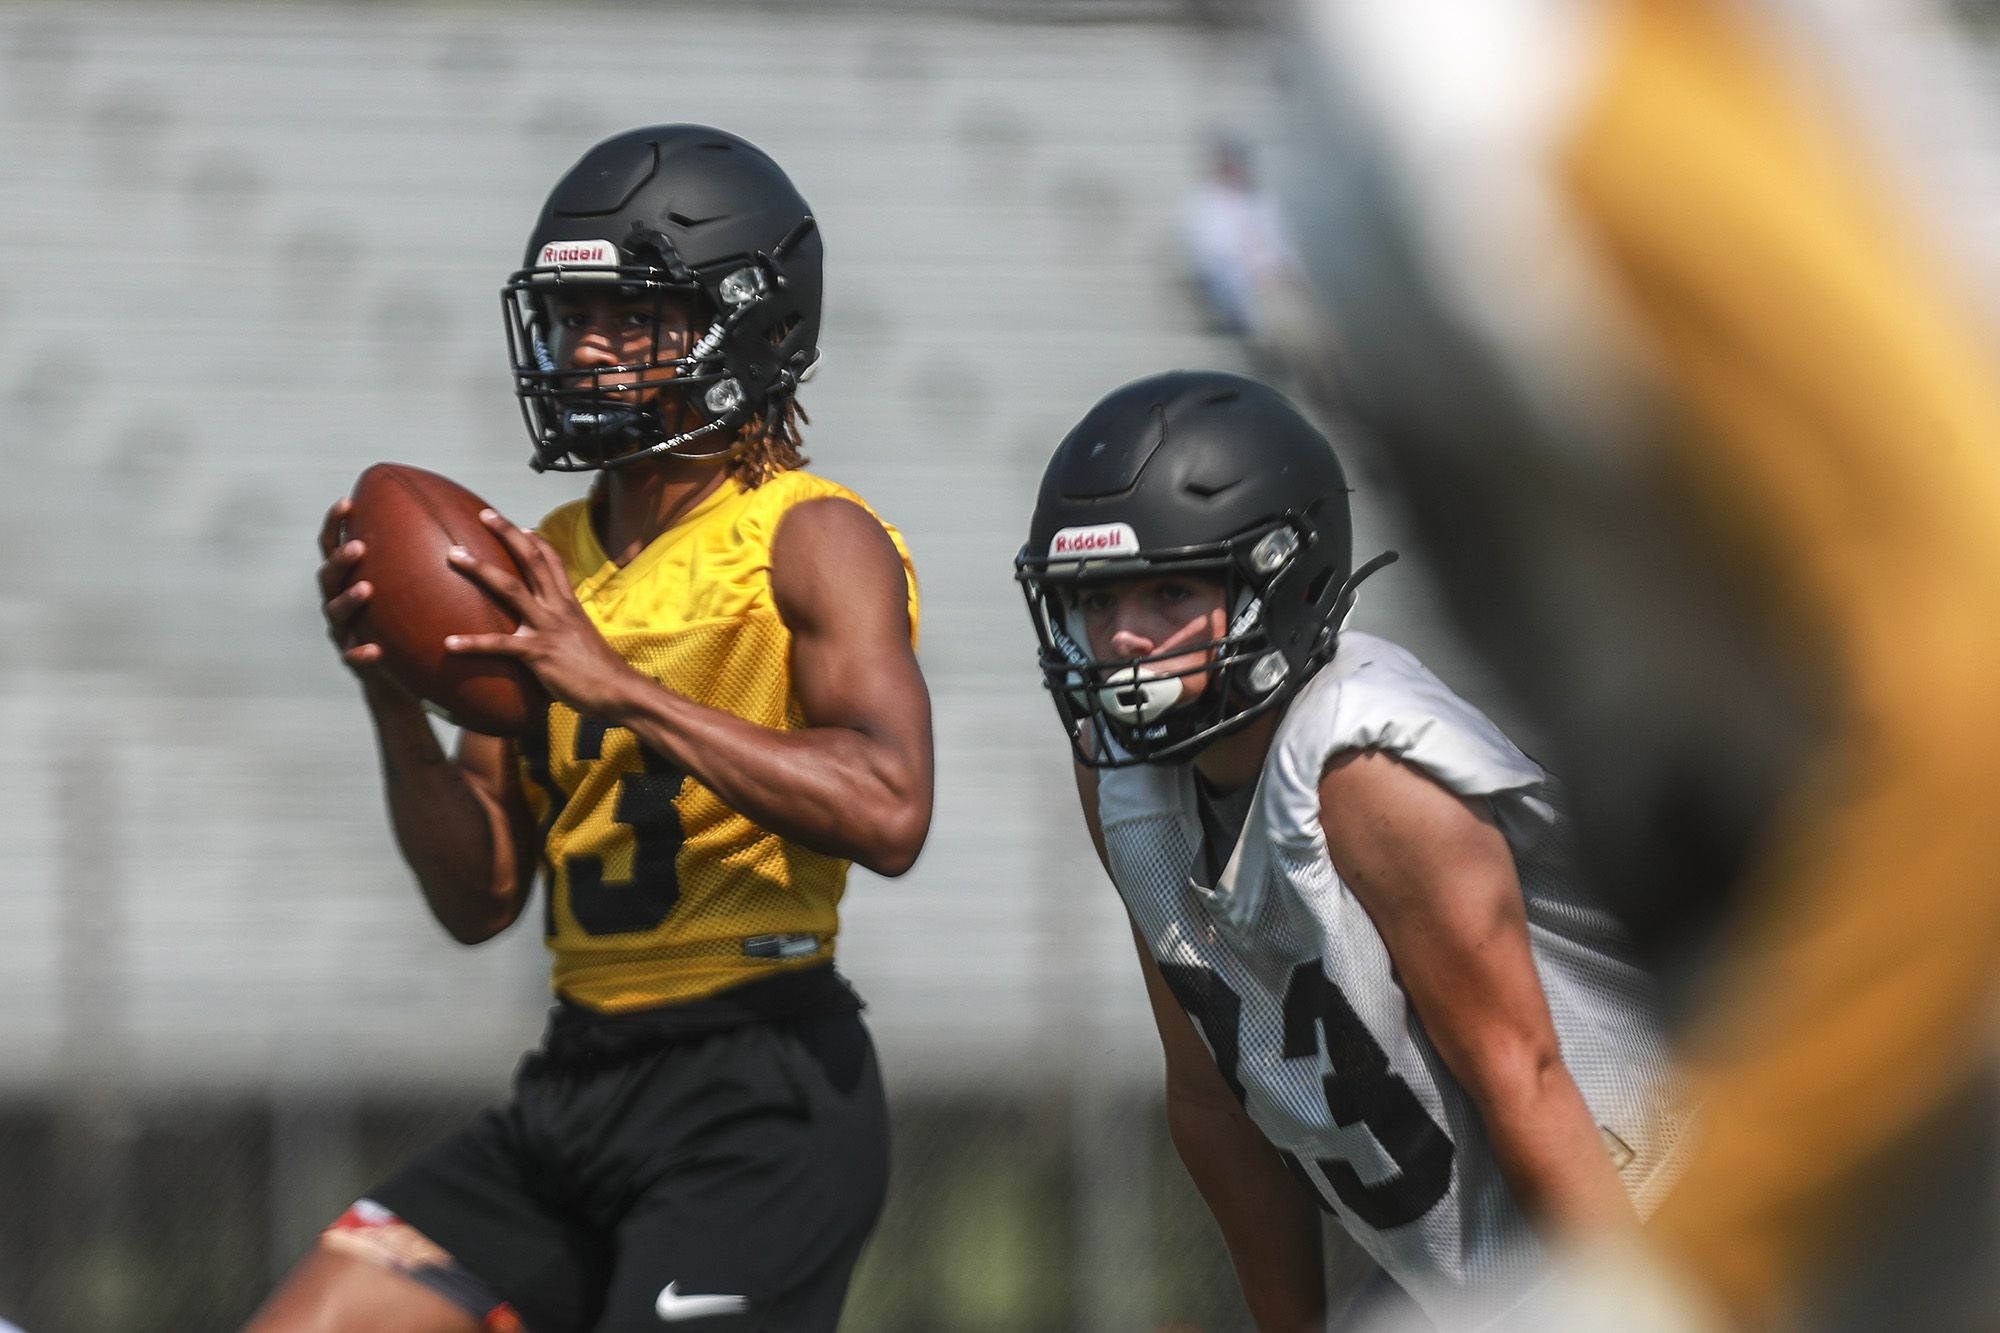 Joliet West quarterback Skylar Crudup drops back after receiving the snap on Wednesday, July 14, 2021, at Lincoln-Way Central High School in New Lenox, Ill.